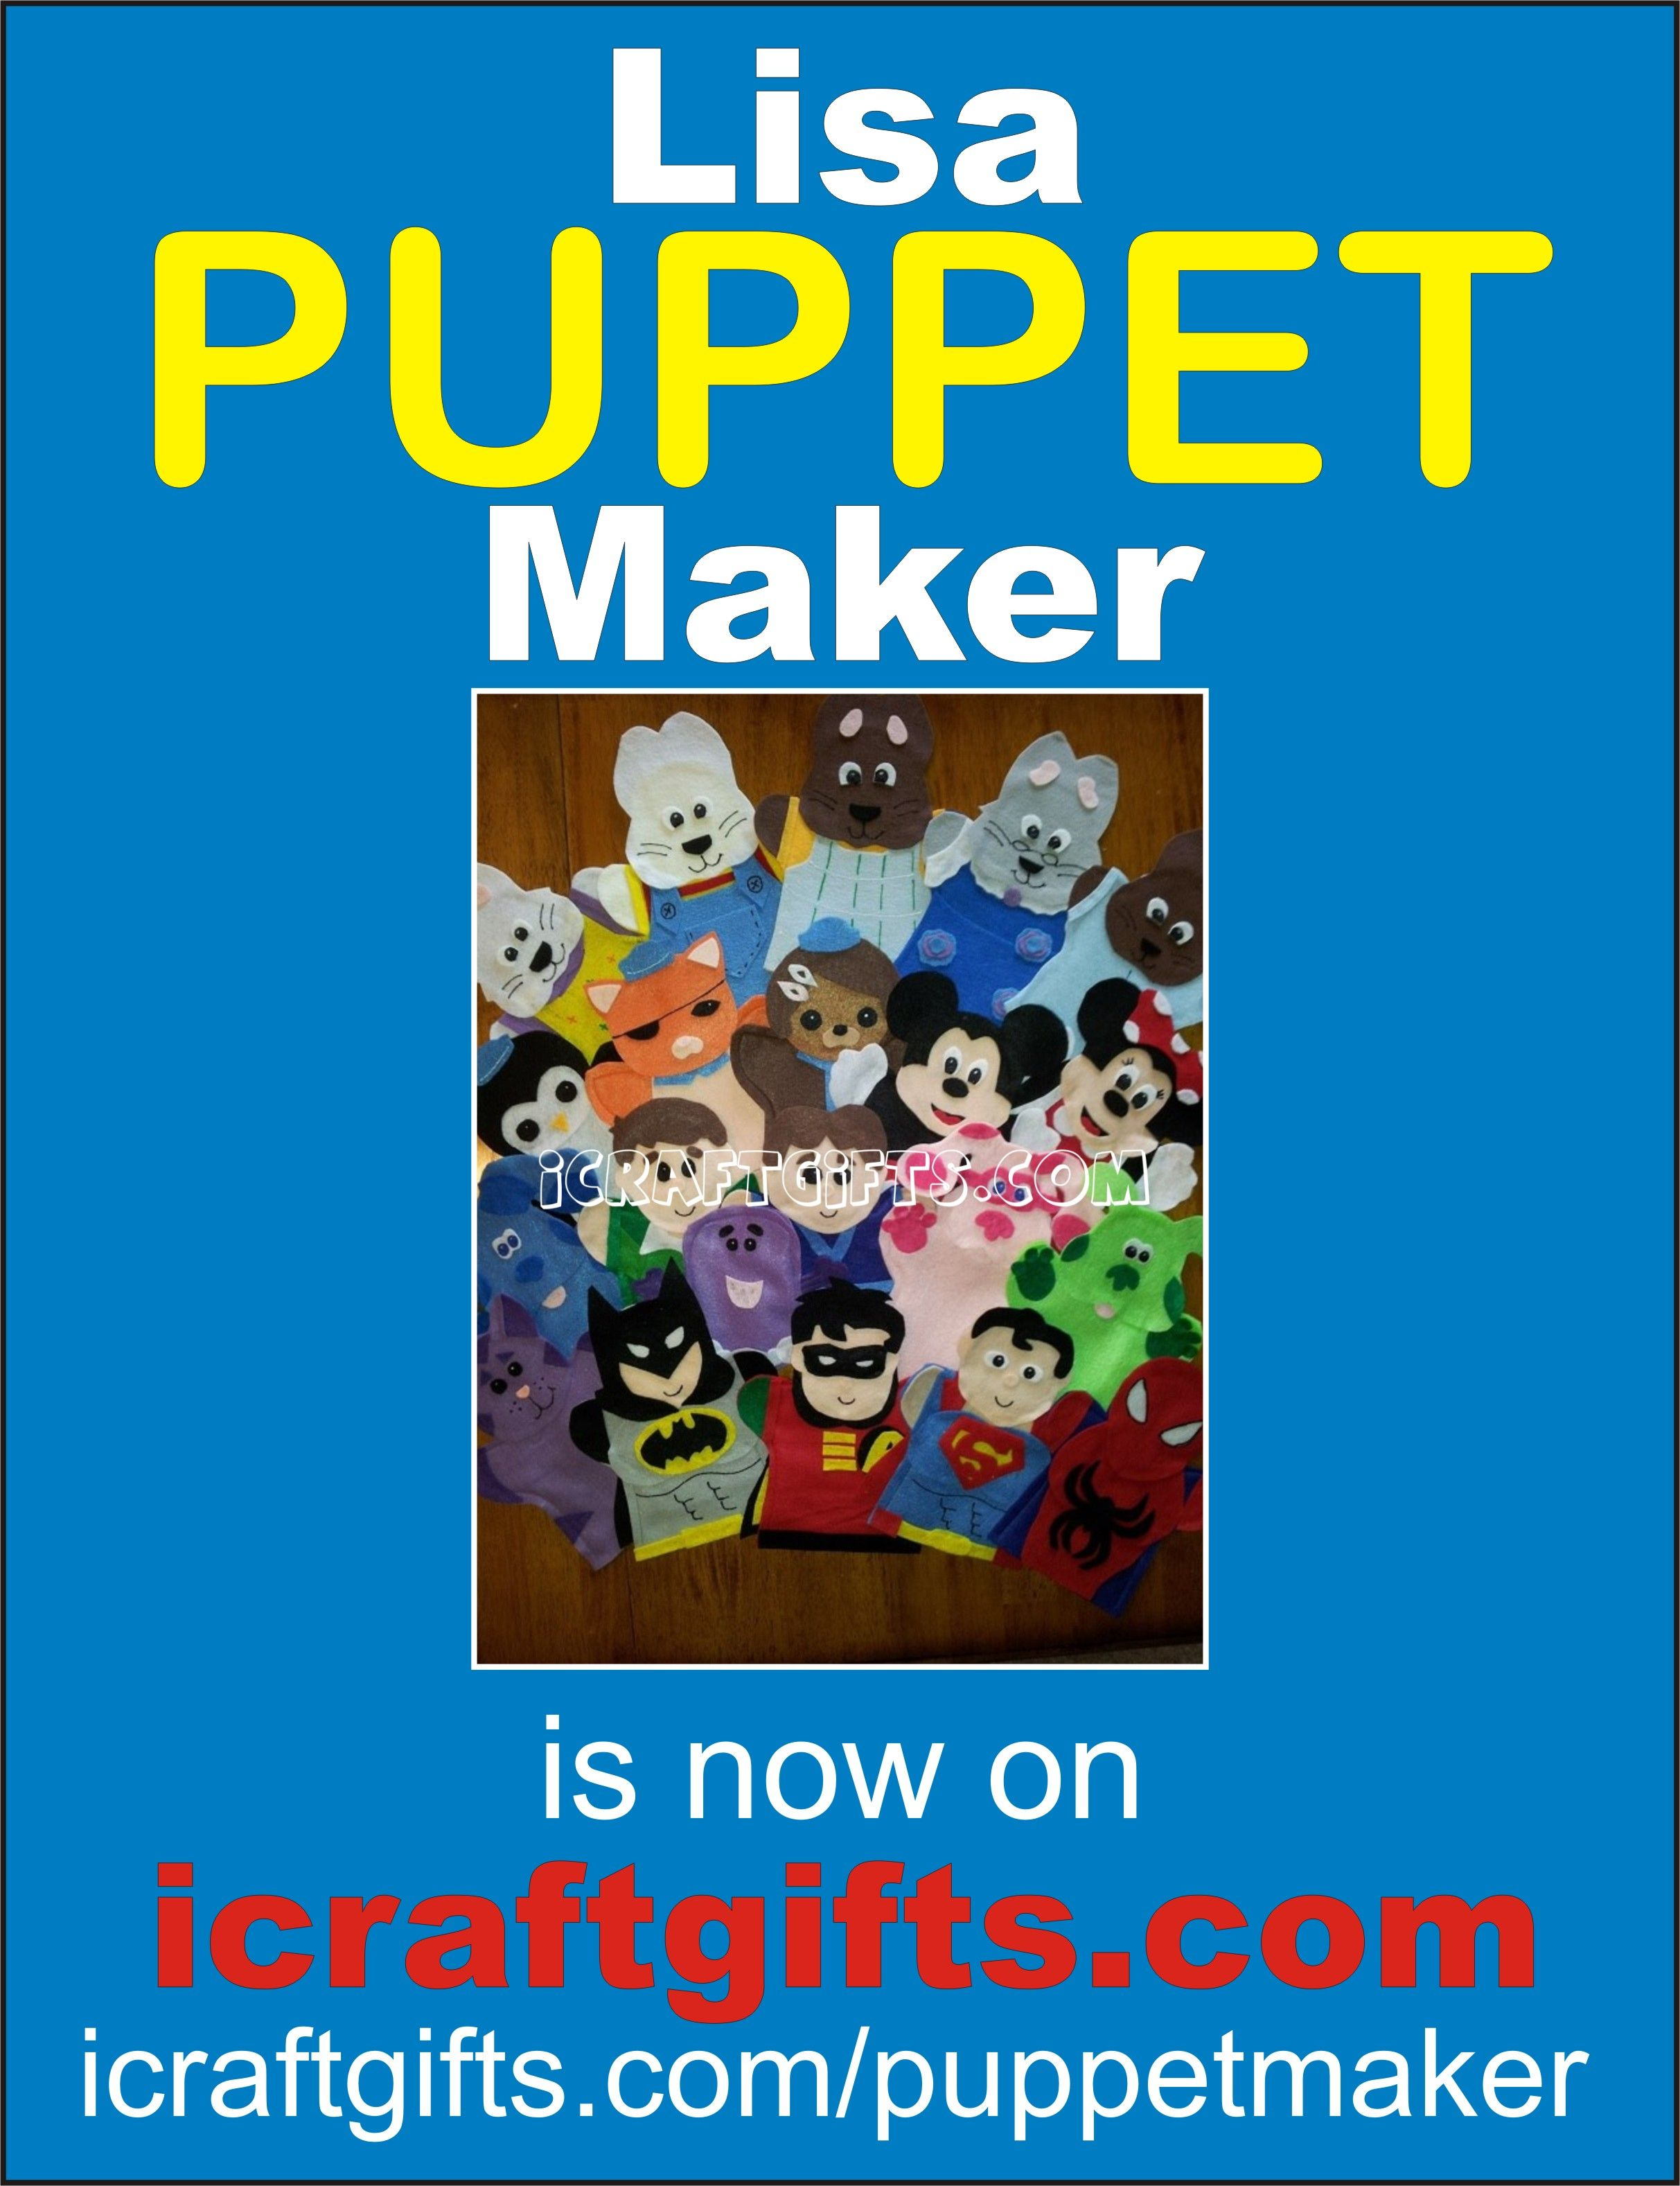 Lisa Been Making Puppets For 8 Years Now Lisa Makes